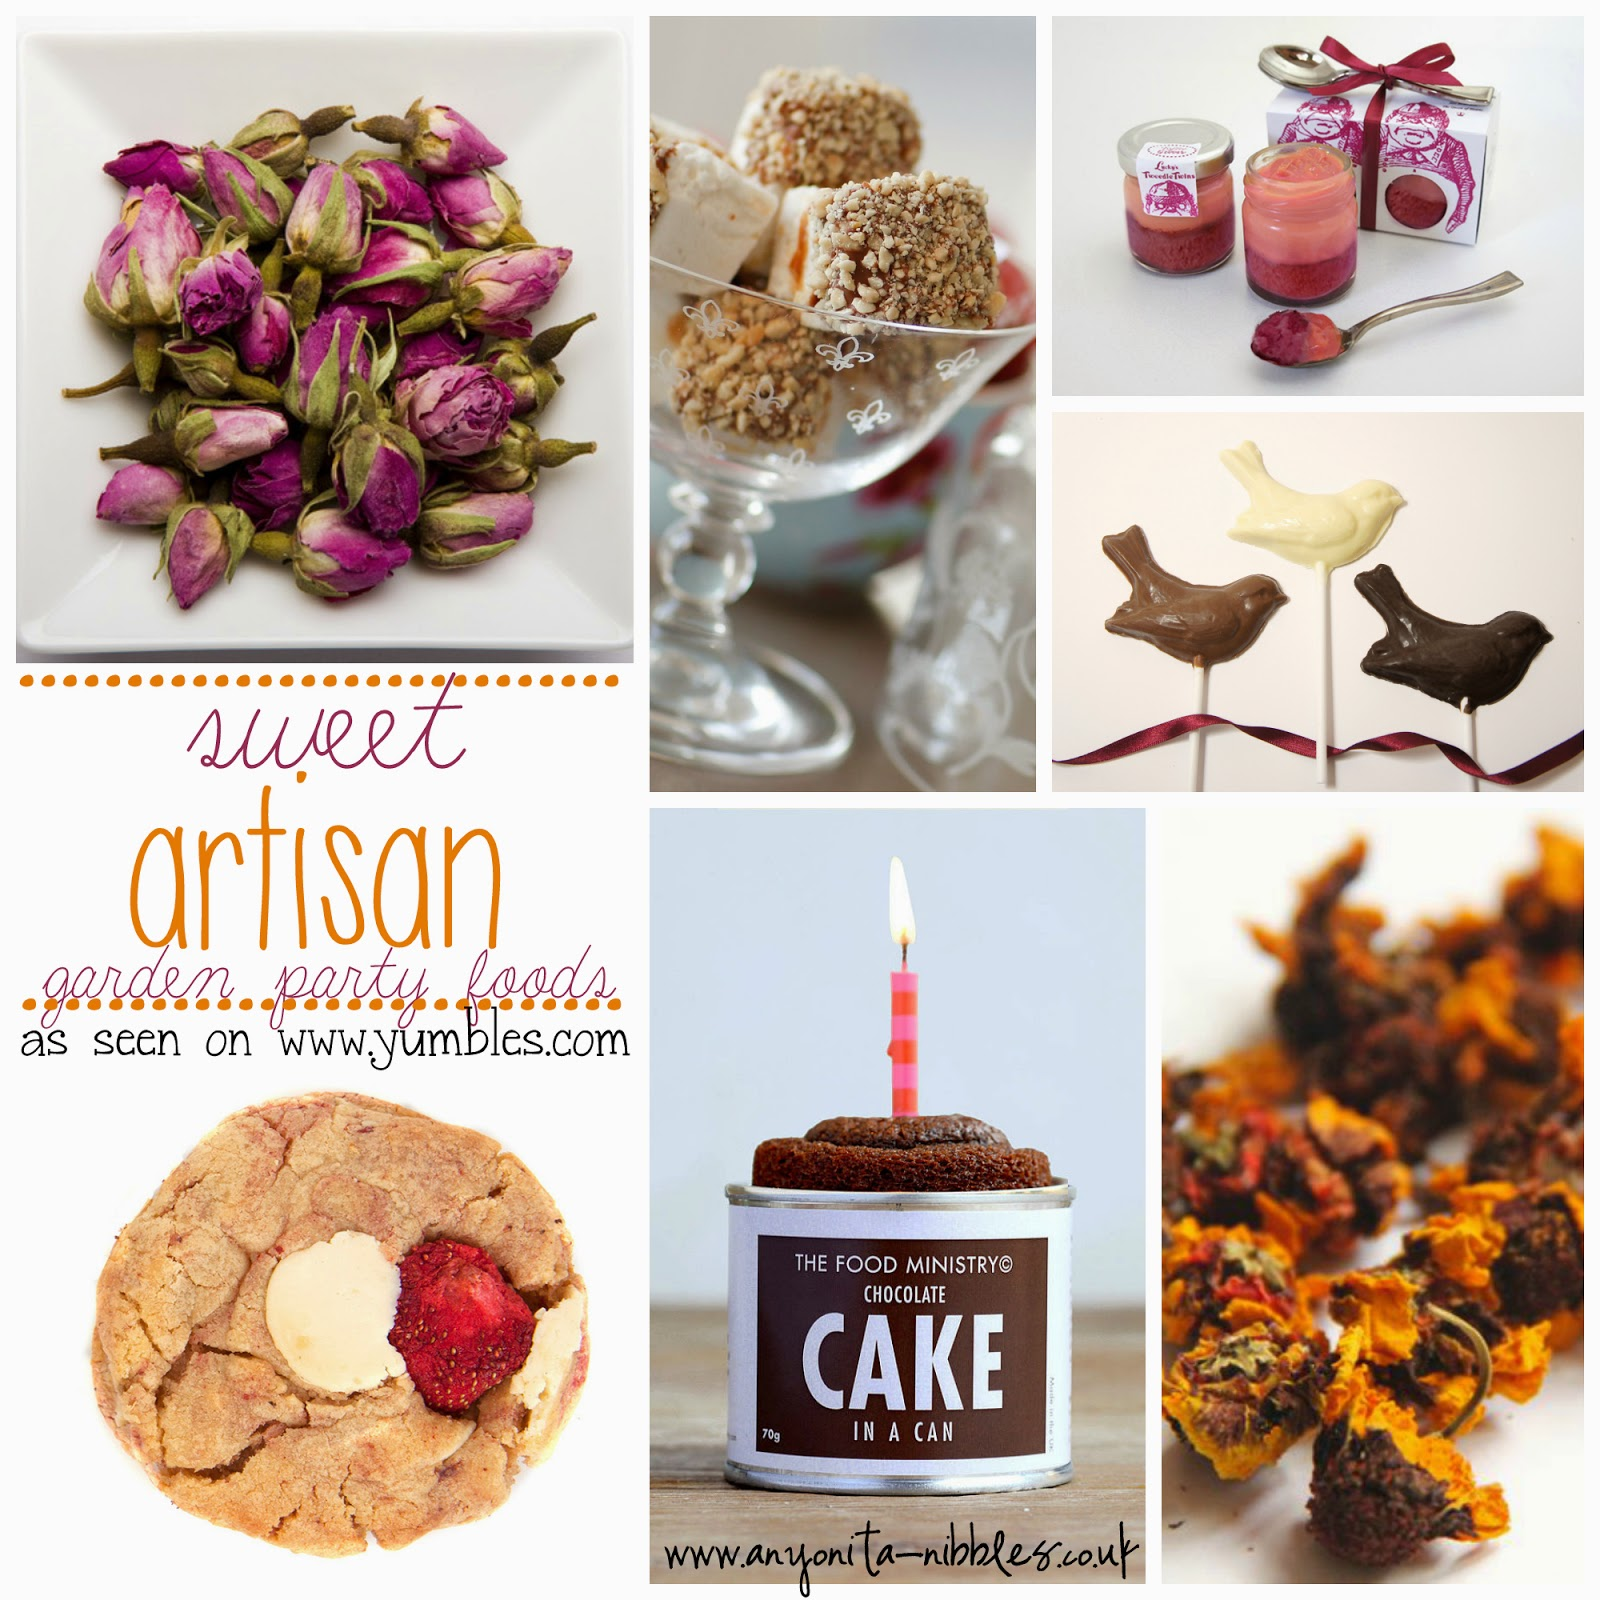 Sweet Artisan Foods for a Late Summer Garden Party by Anyonita Nibbles